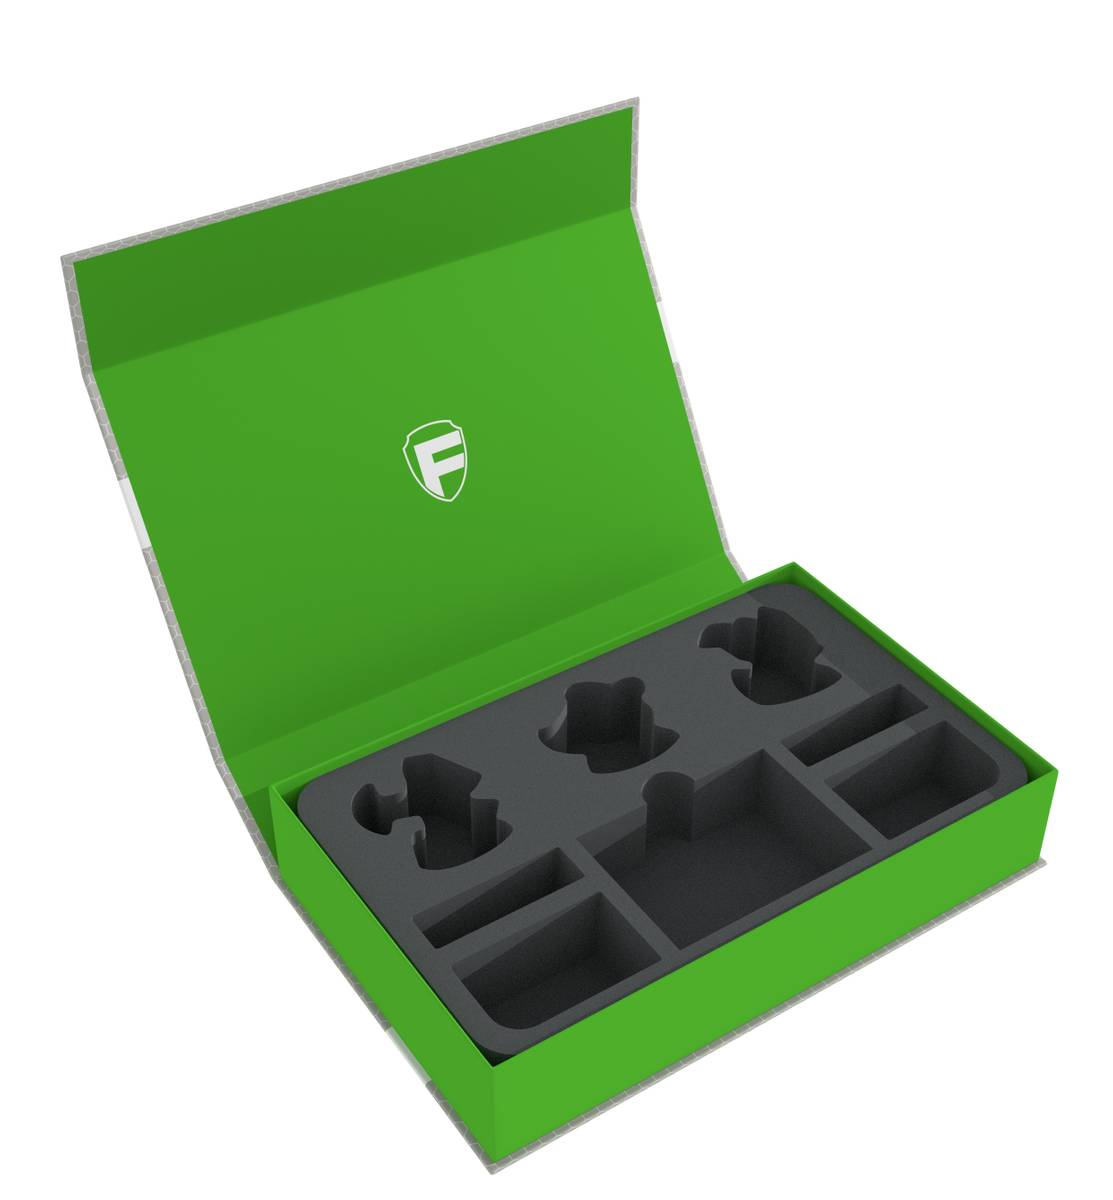 Feldherr Magnetic Box green for Warhammer Underworlds: Shadespire - The Farstriders